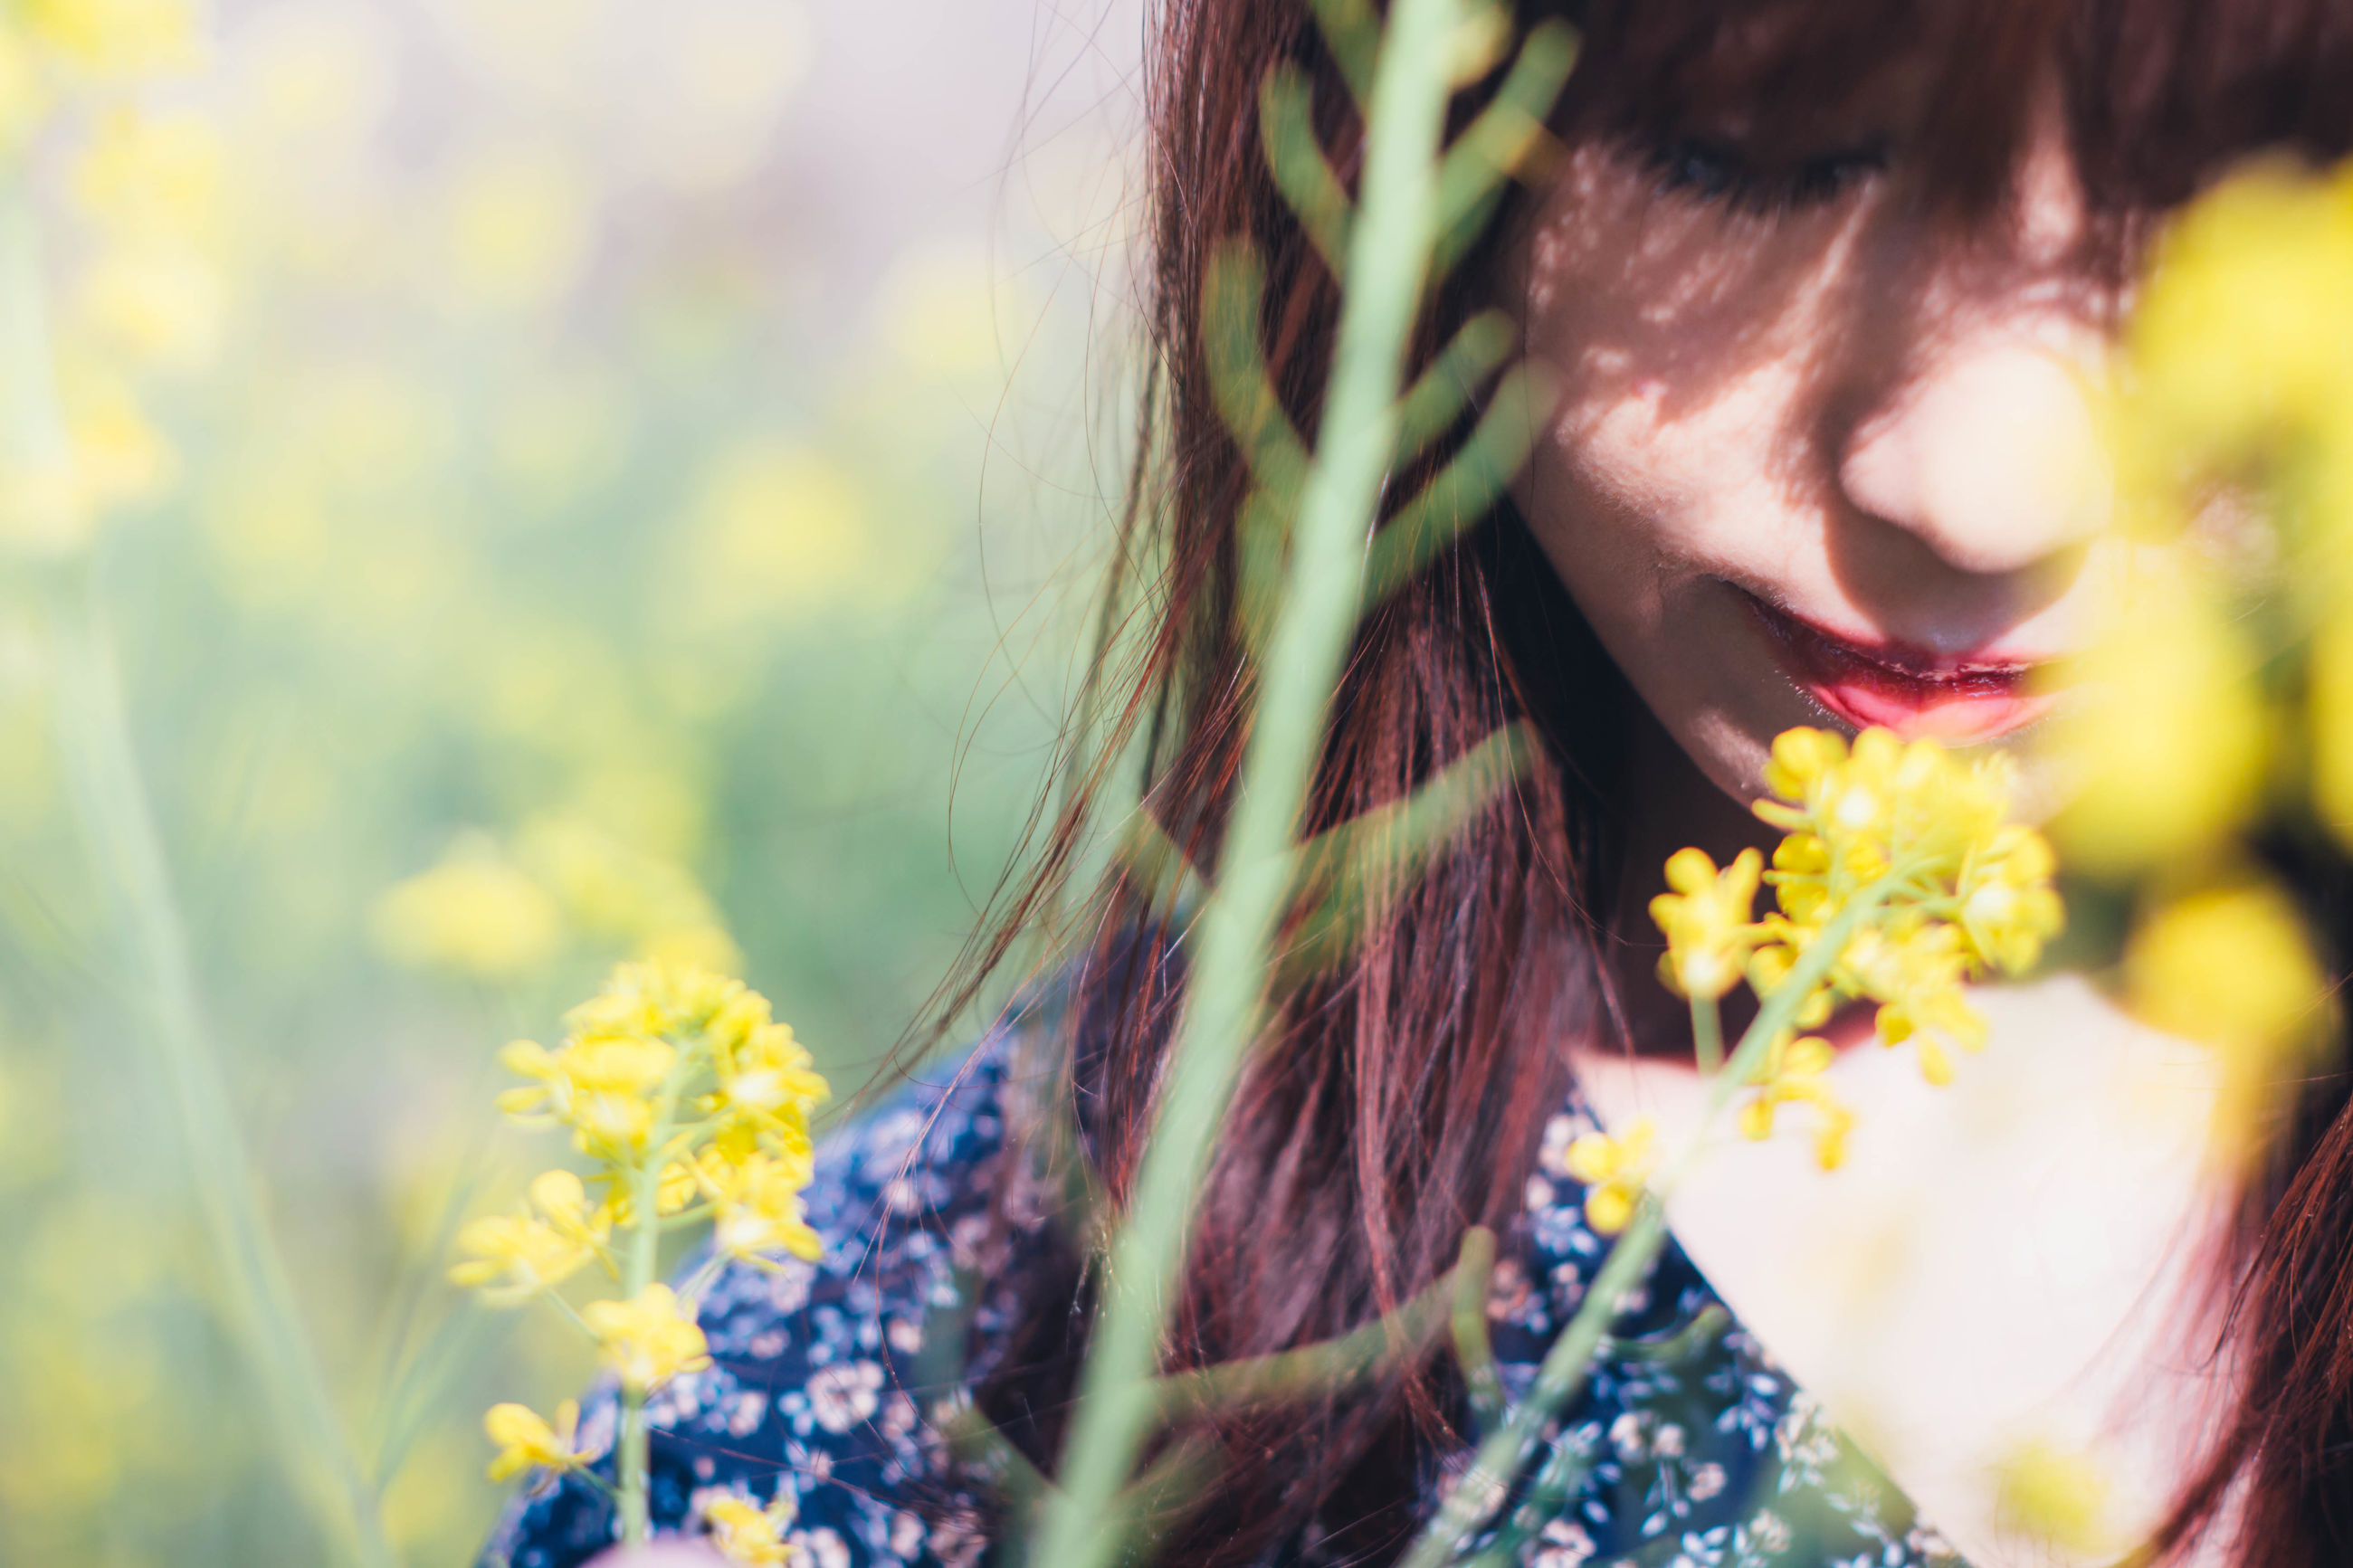 flower, real people, nature, growth, plant, agriculture, one person, field, lifestyles, freshness, outdoors, young women, close-up, flower head, young adult, beautiful woman, rural scene, day, beauty in nature, adult